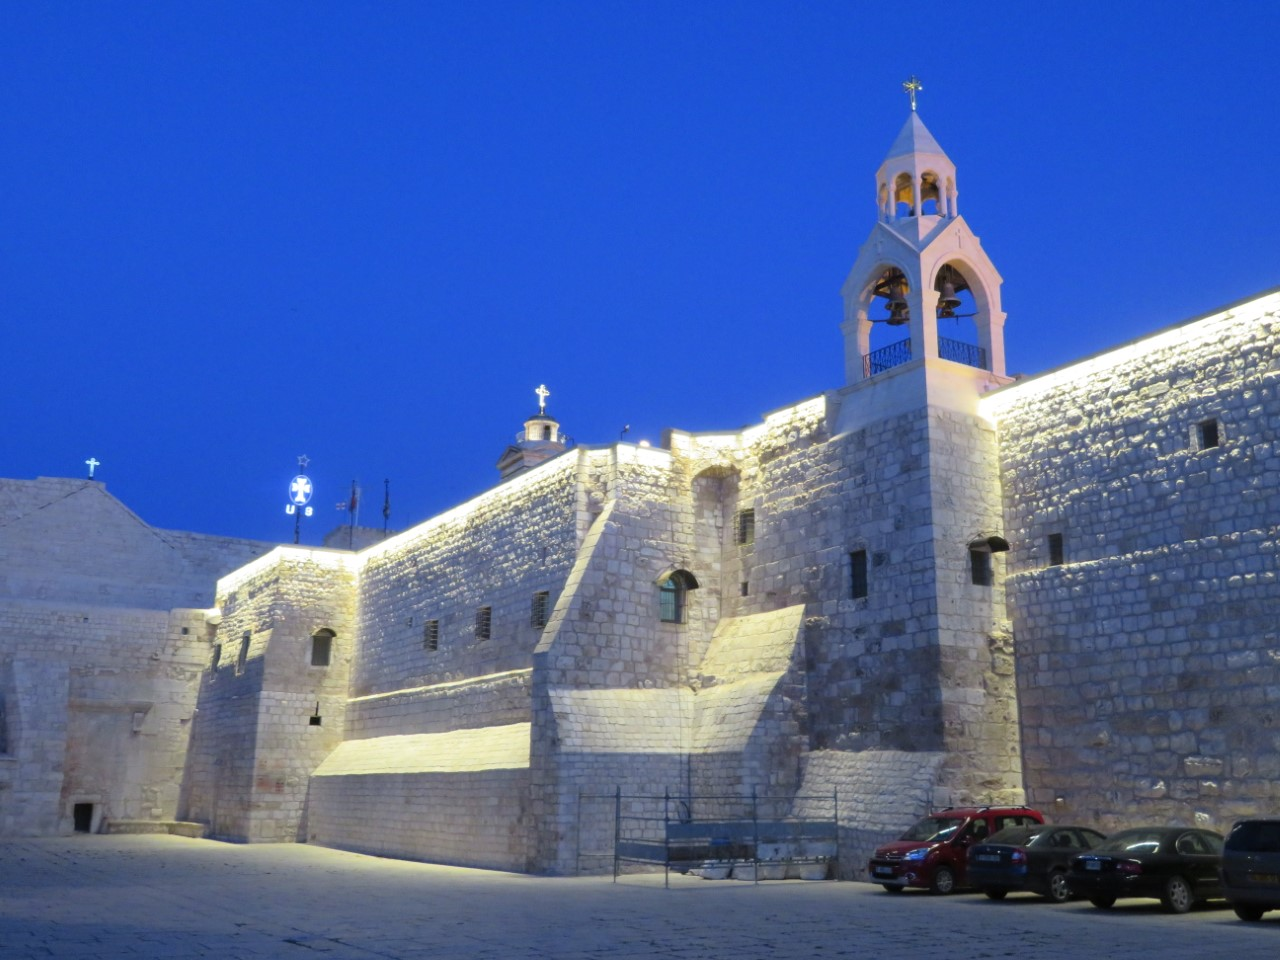 The Church of the Nativity in Bethlehem stands empty against a blue sky, just after dusk.  Tourism has come to a complete standstill due to the Coronavirus pandemic.